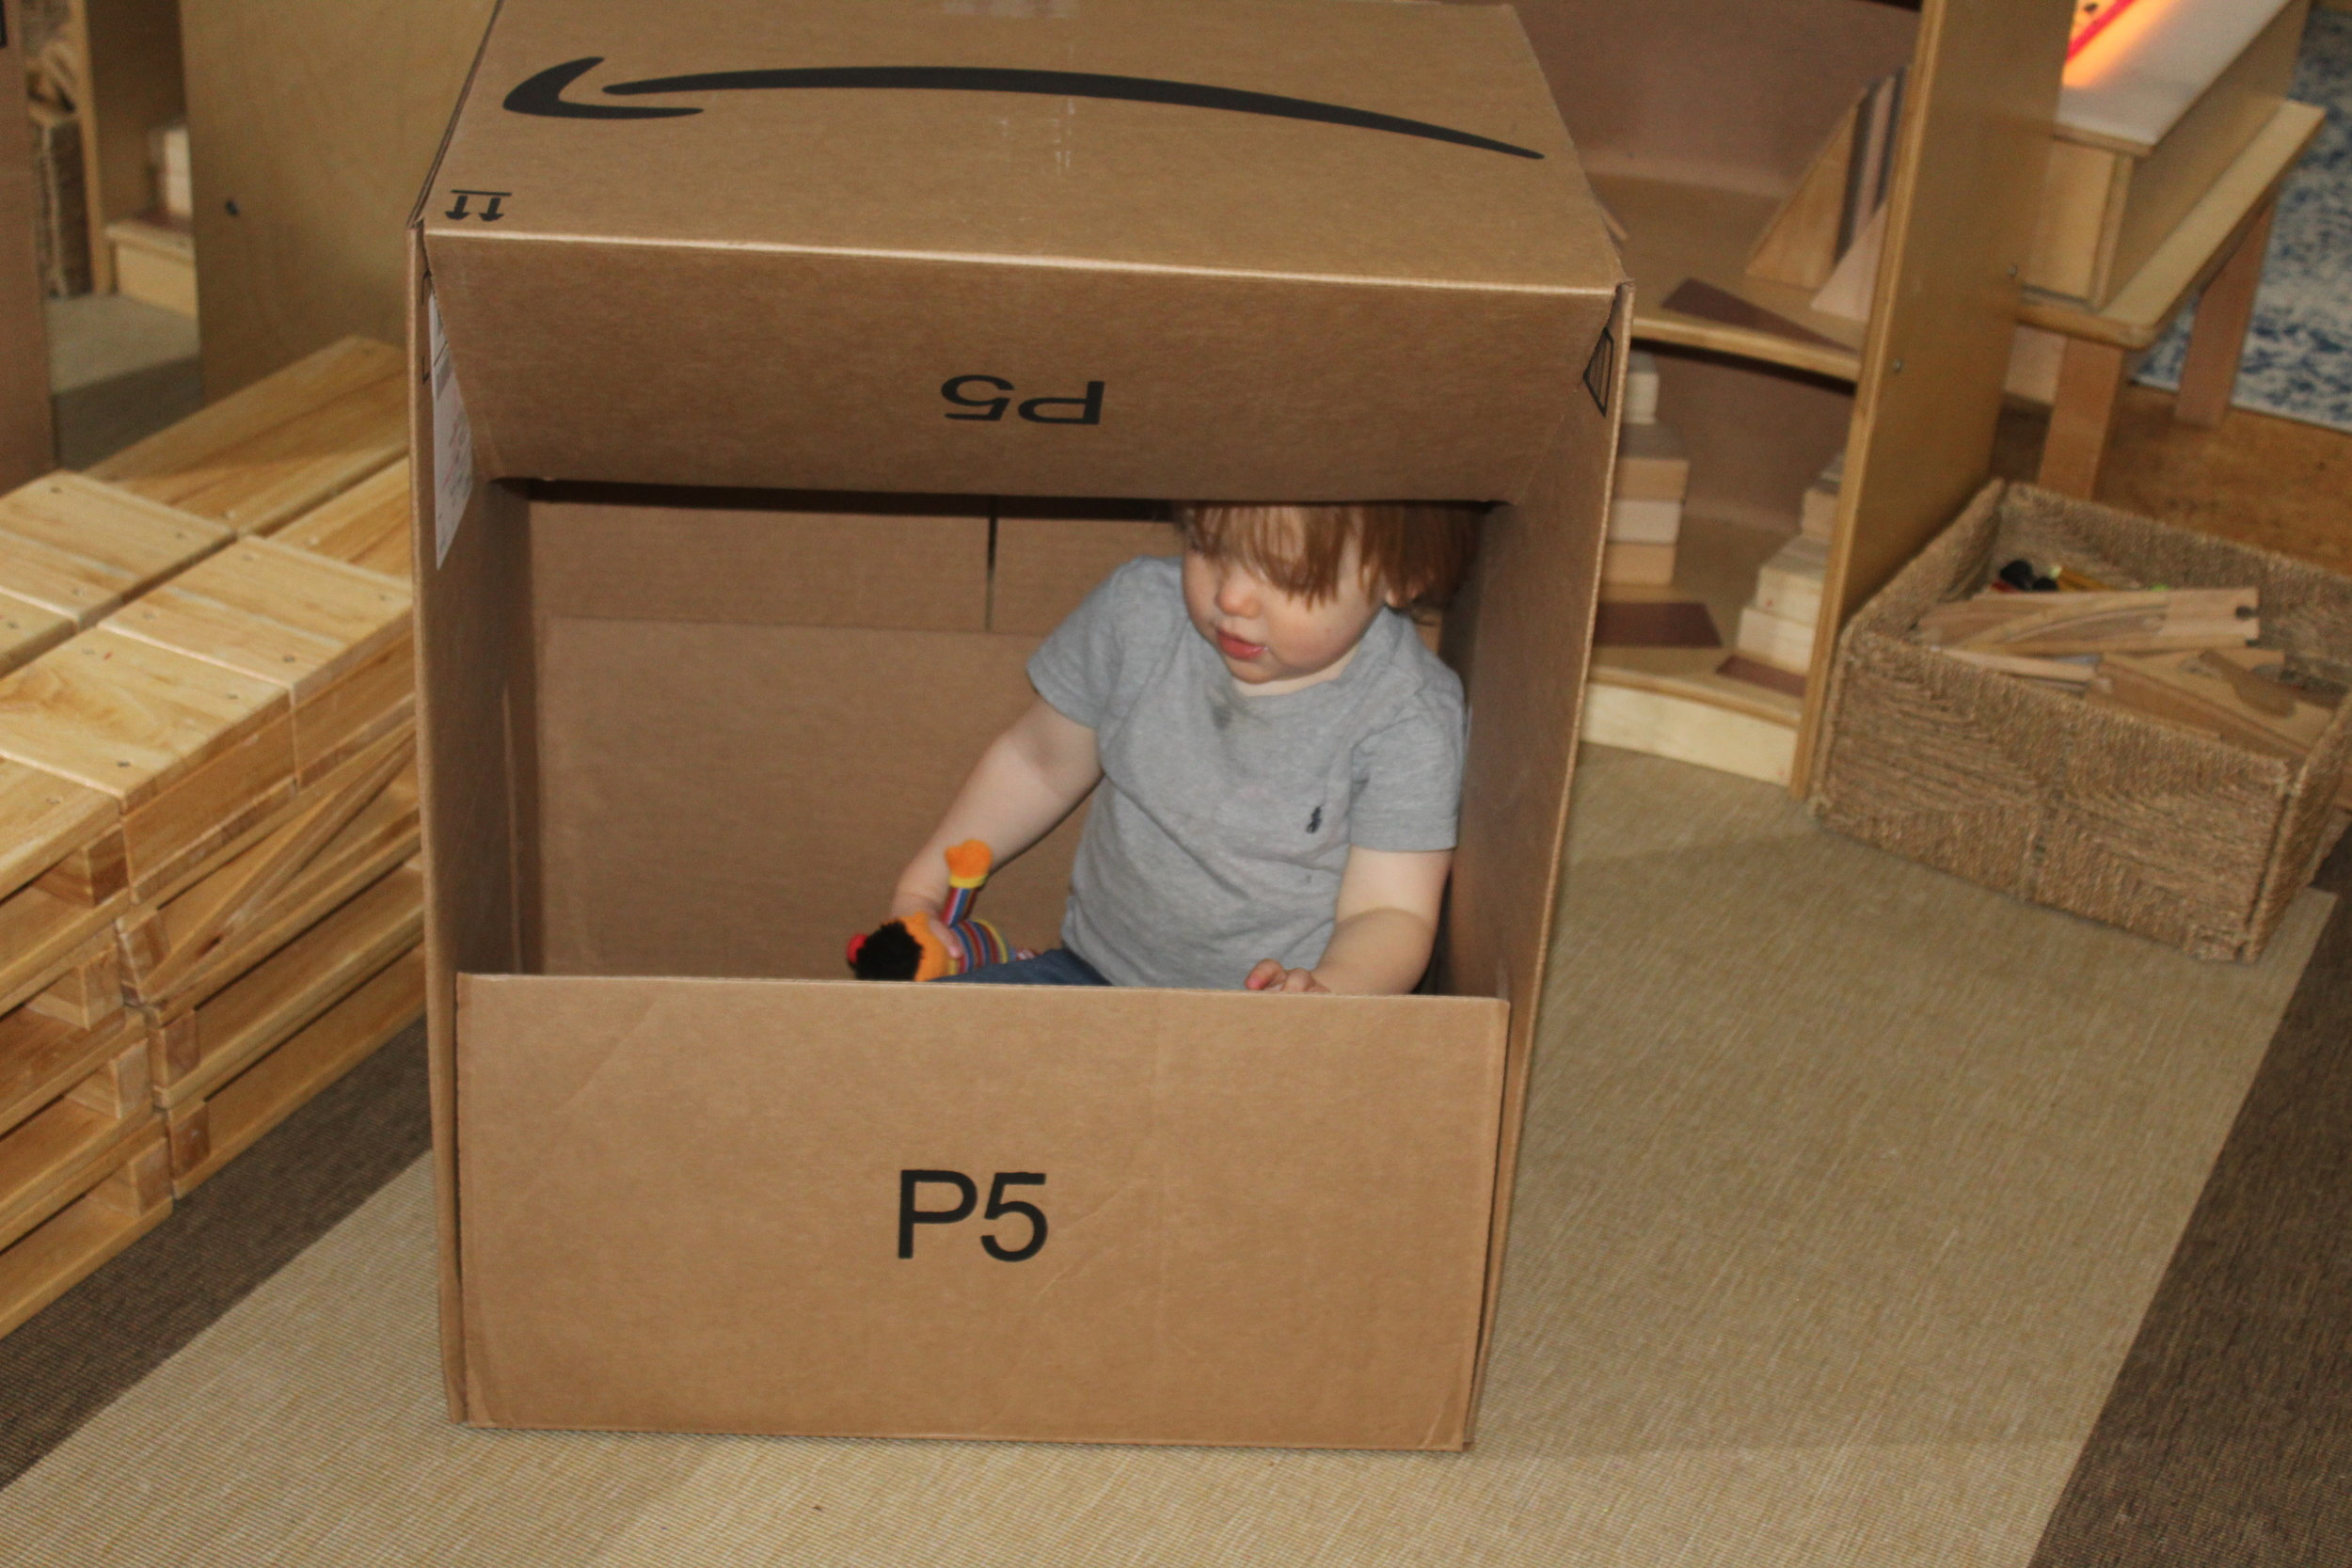 Toddlers are learning to understand their own space. Children are constantly testing their body; they crawl in, around, over, and under things. The first thing toddlers do when they see a cardboard box is to try to get in it. As they explore getting into the box, they are discovering their body. Cardboard boxes are excellent tools for spatial exploration, and understanding their space.